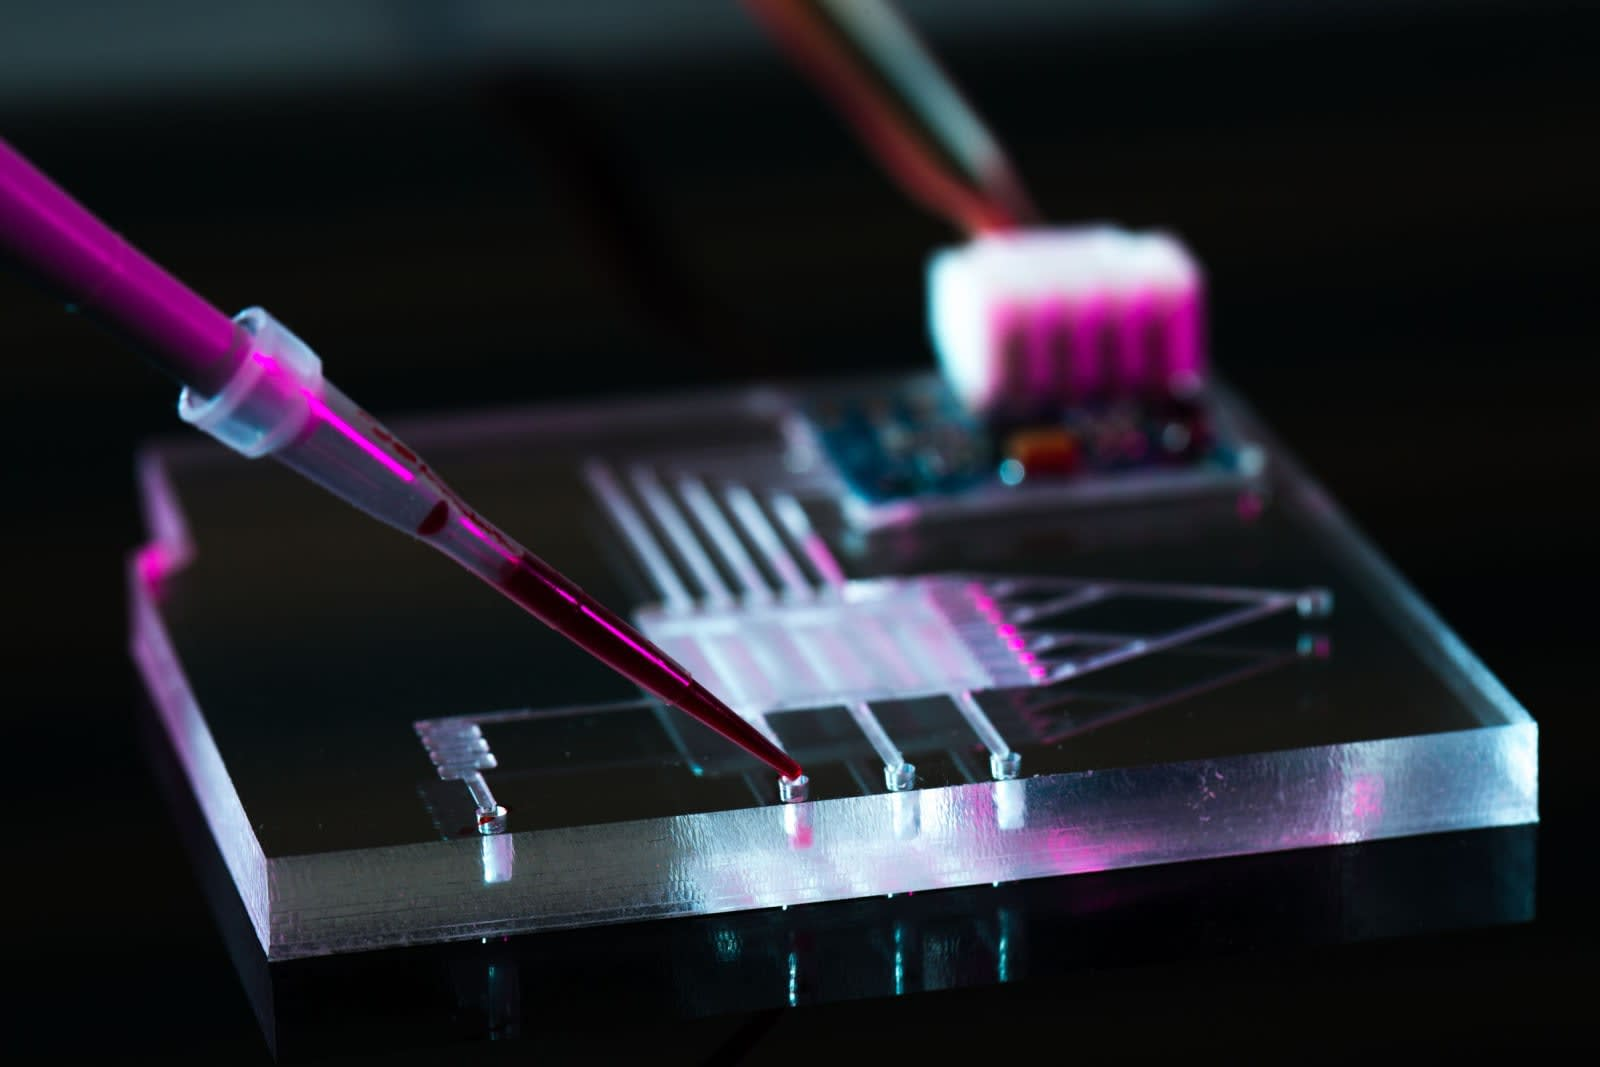 Self-healing 3D-printed gel has a future in robots and medicine